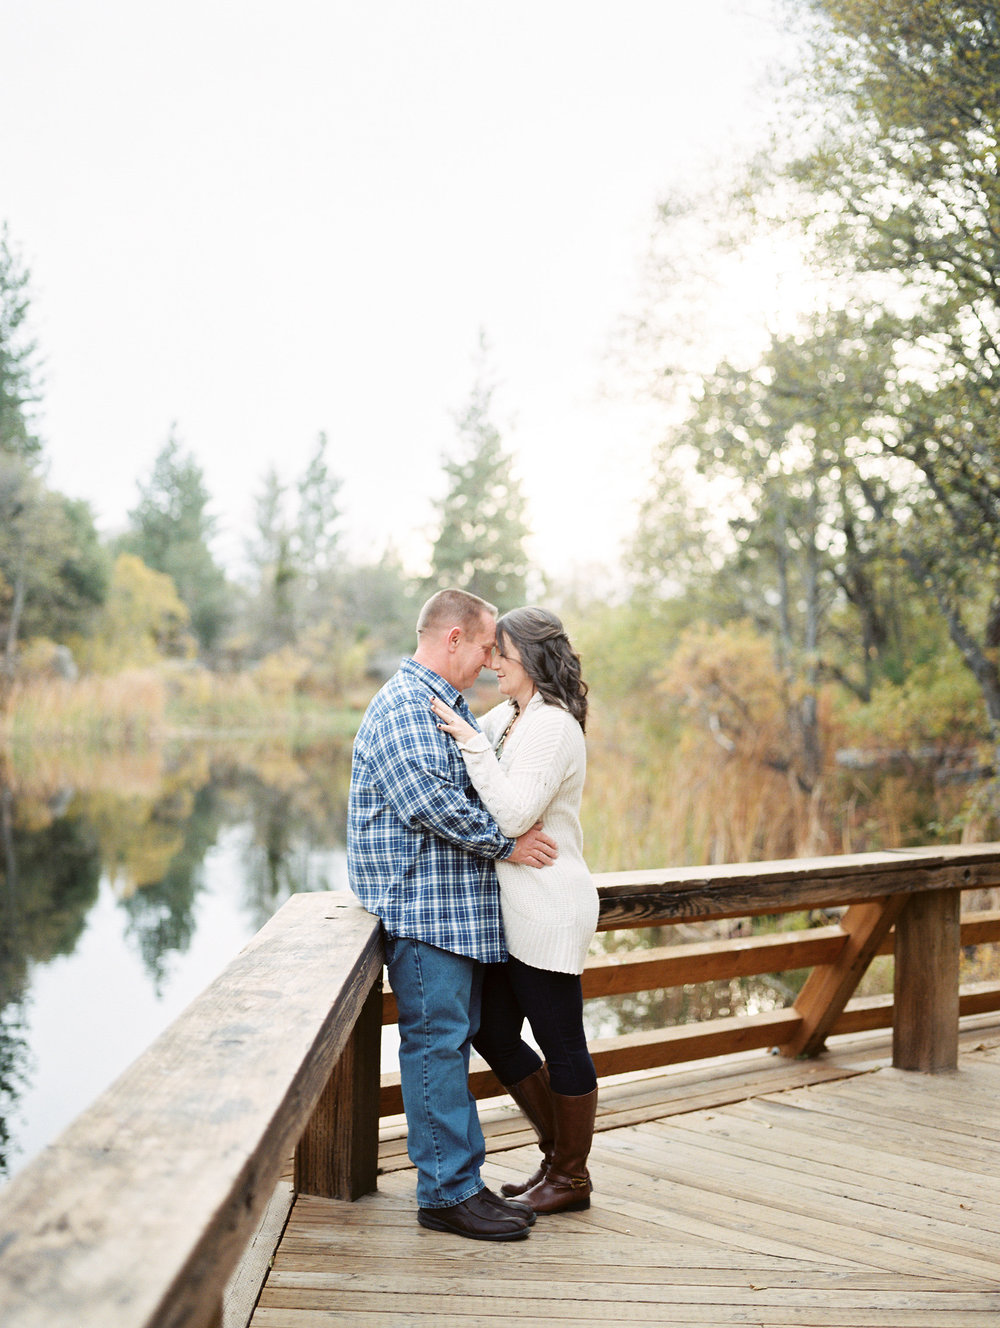 film photographer, engagement session, Idyllwild engagement session, wedding photographer